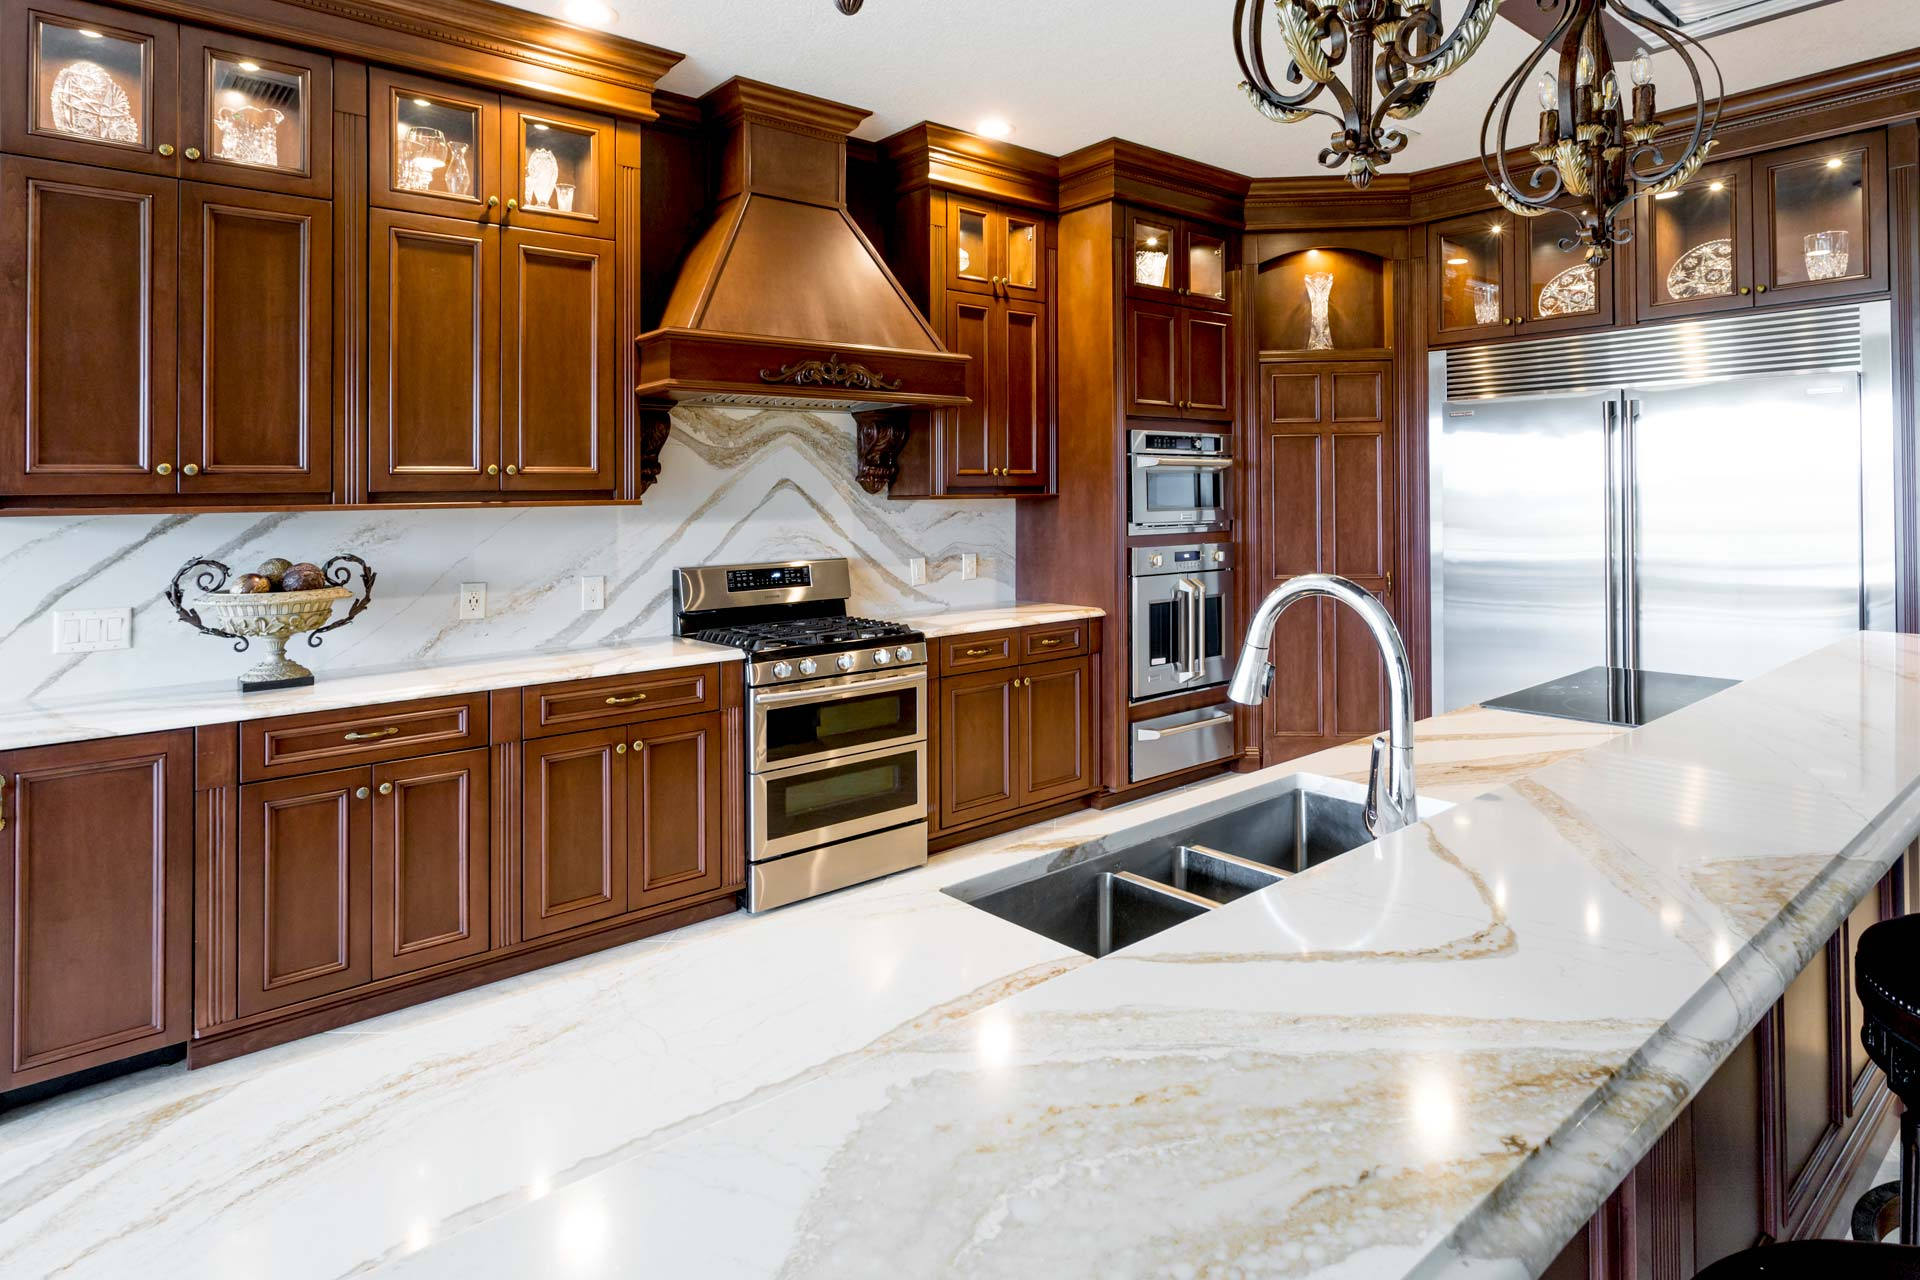 McADAMS KITCHEN. Solid Image Inc. Leesburg Florida. Corian Quartz Granite countertops